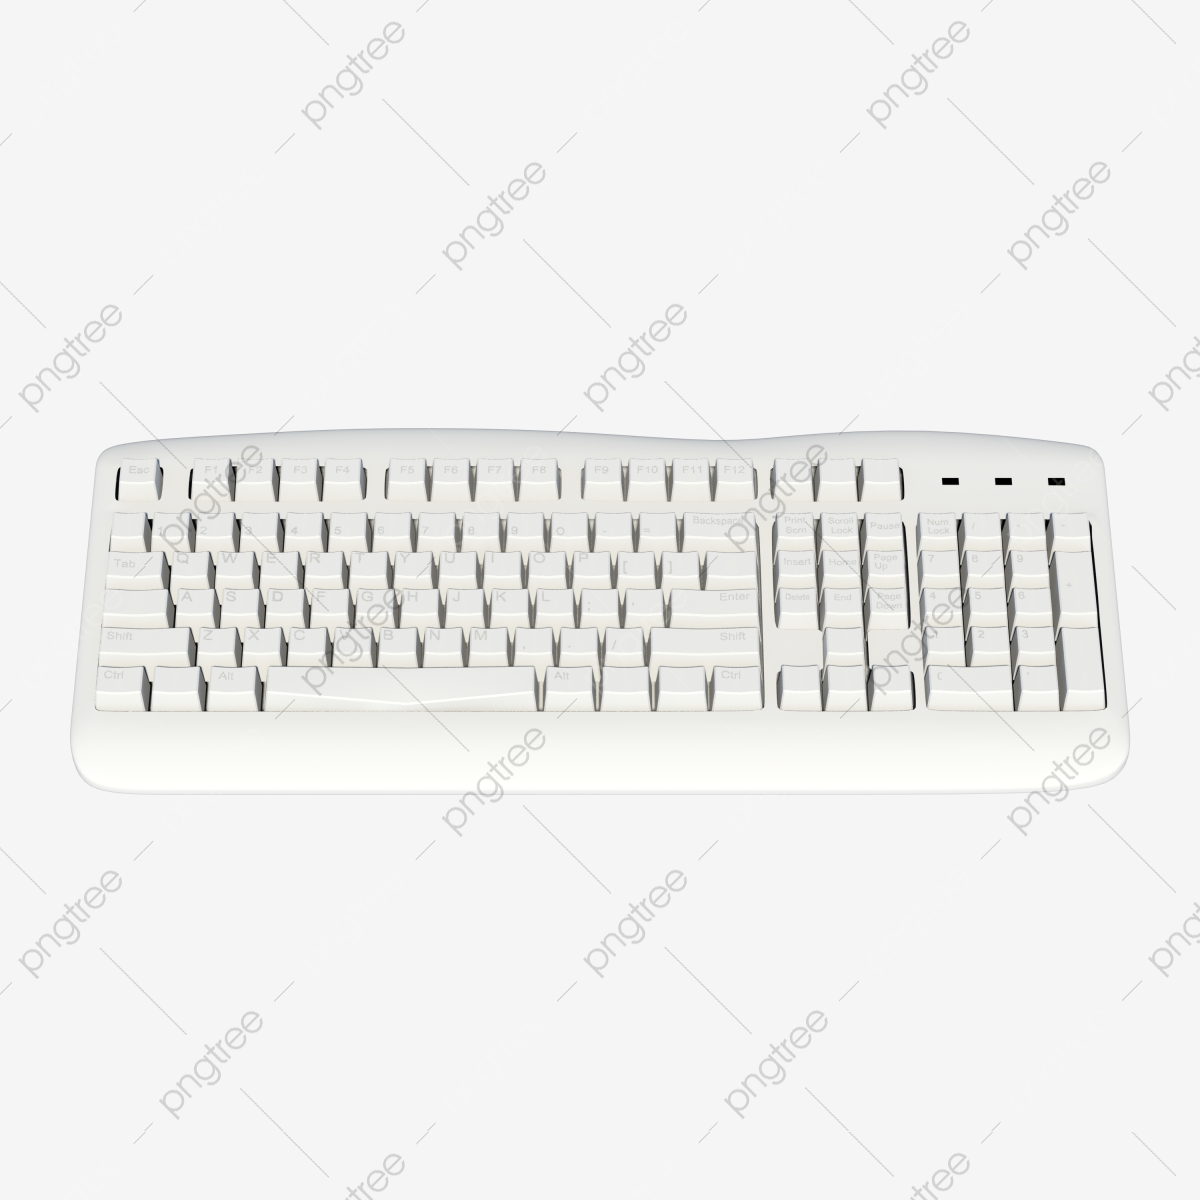 White Mechanical Computer Keyboard Keyboard Peripherals Computer Png Transparent Clipart Image And Psd File For Free Download